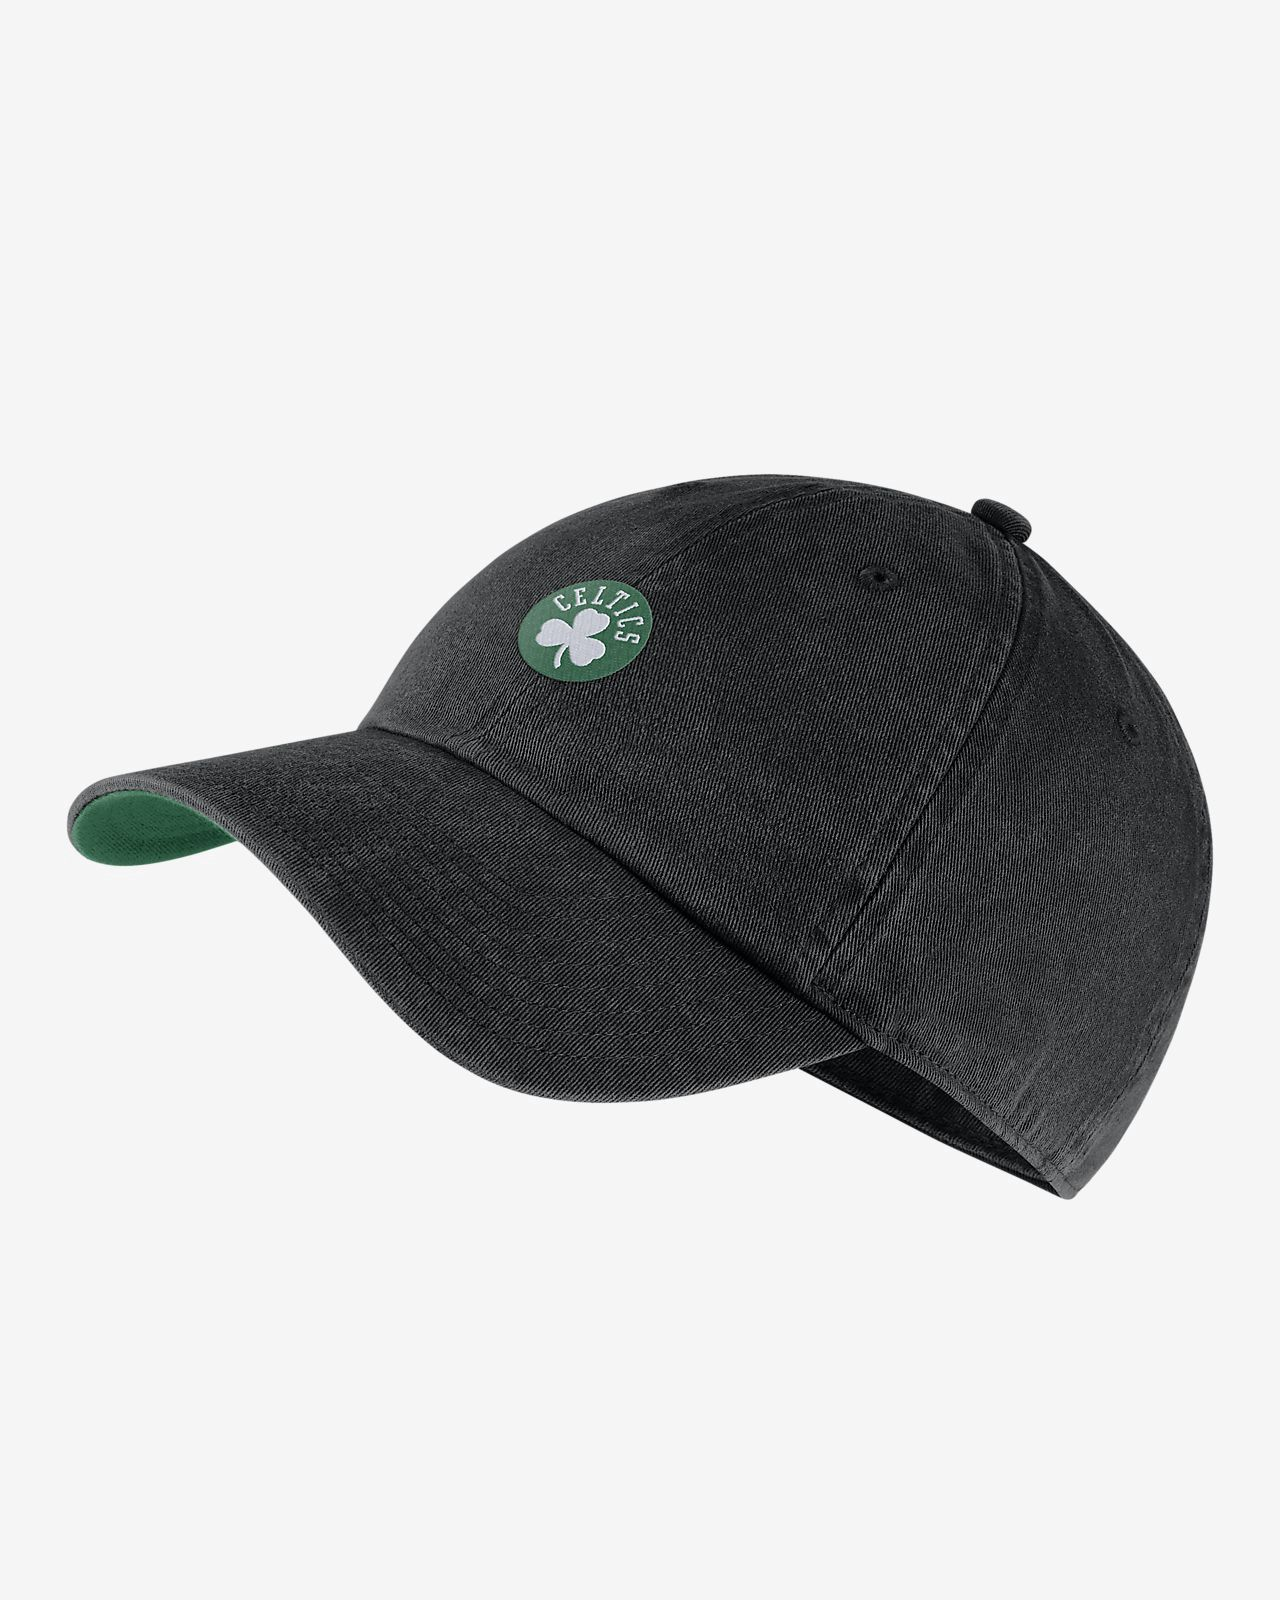 16729e7d3 Nike Boston Celtics Heritage86 Nba Hat - Black/Clover Os | Products ...